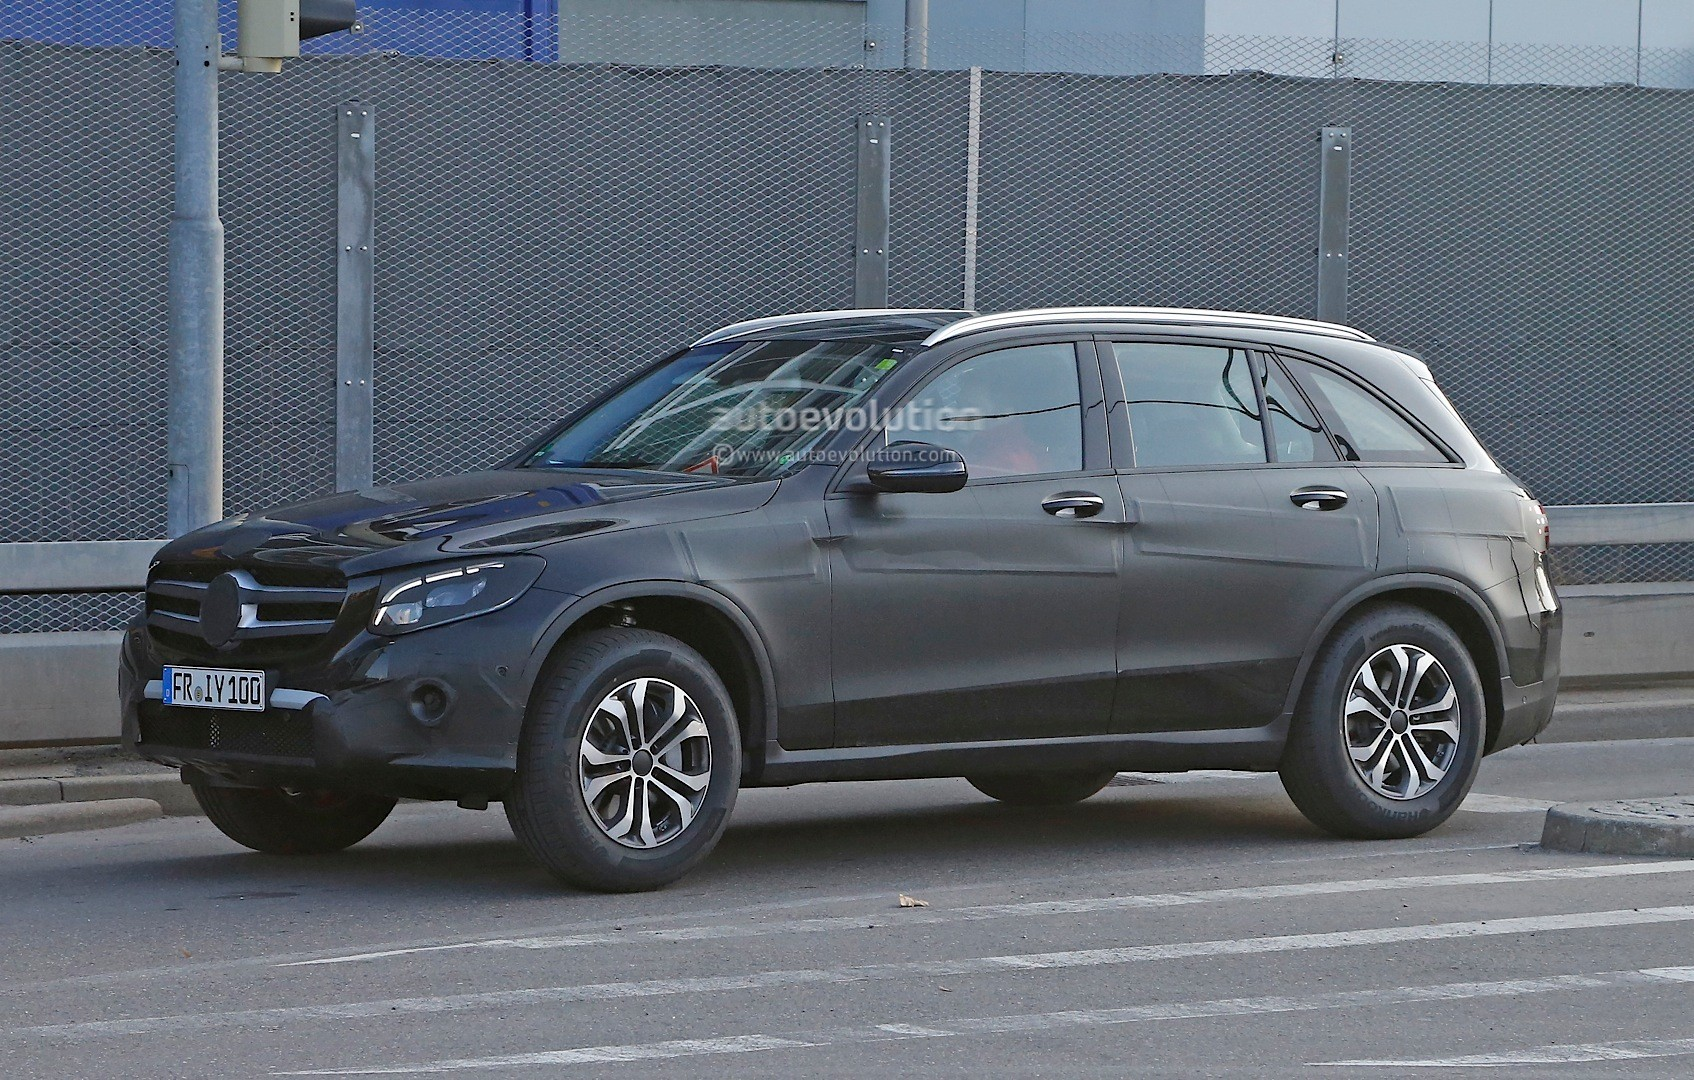 Mercedes benz glc launch re confirmed for june 17 more for 2014 mercedes benz glc